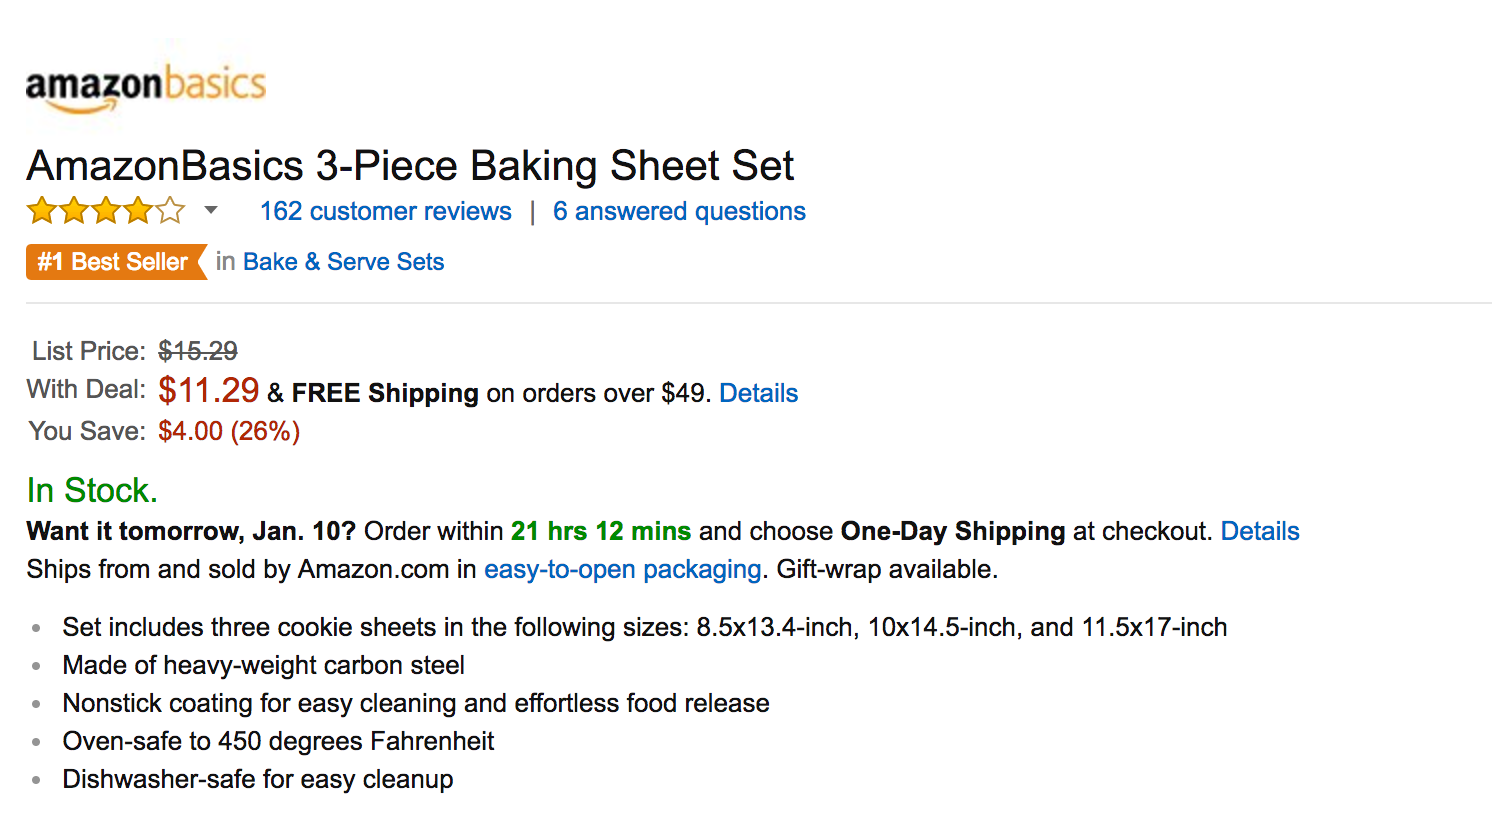 amazonbasics-3-piece-baking-sheet-set-4